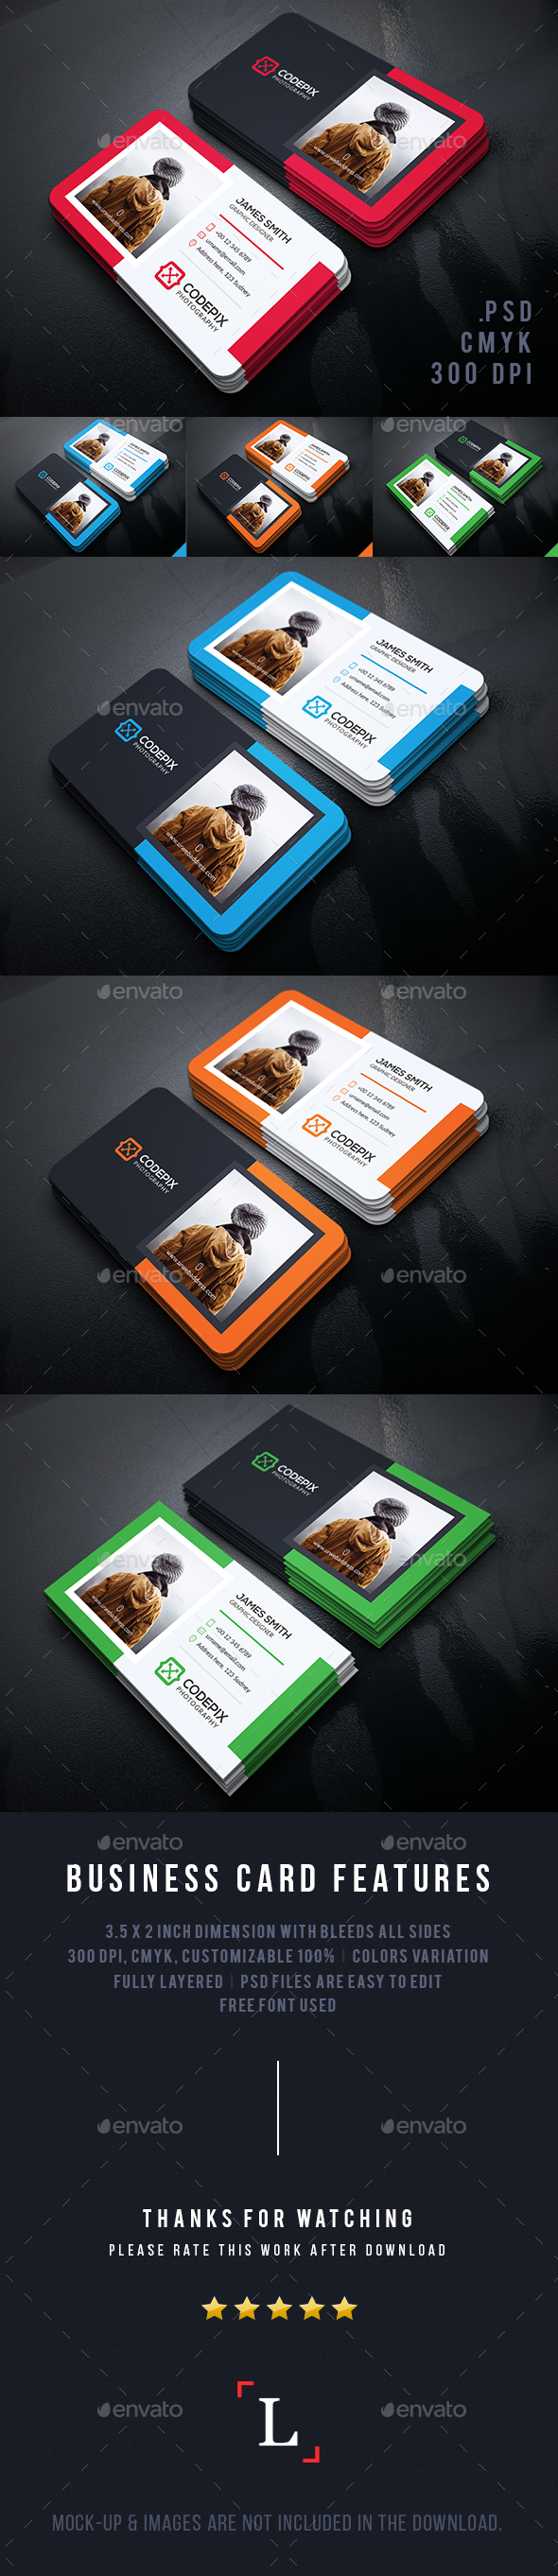 Personal Photography Business Card - Business Cards Print Templates